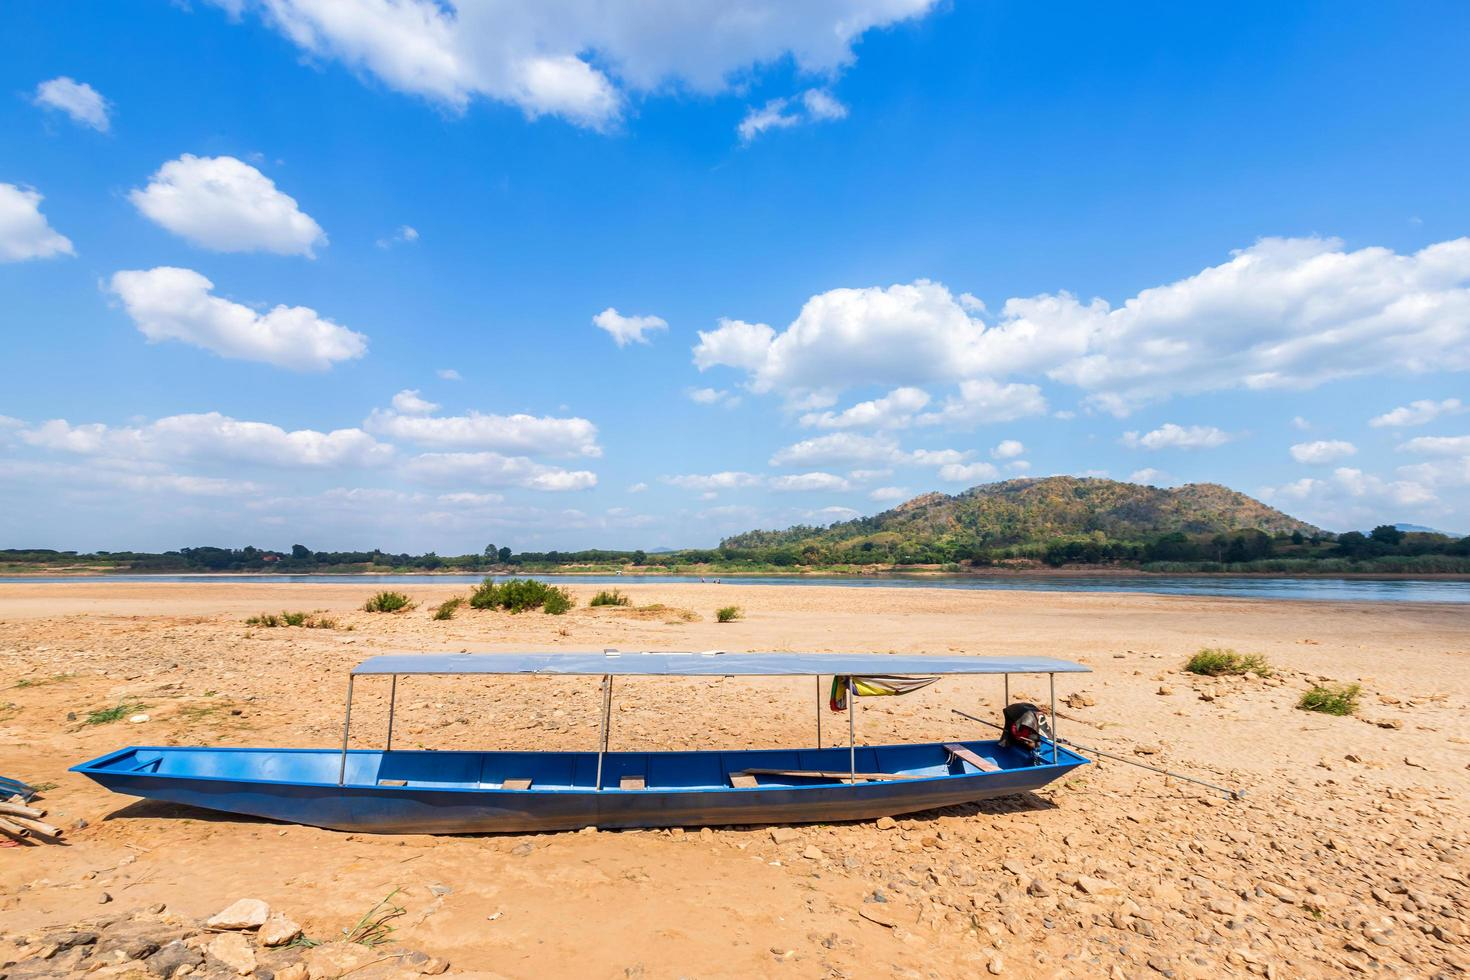 Boat parked on the dry sand  photo